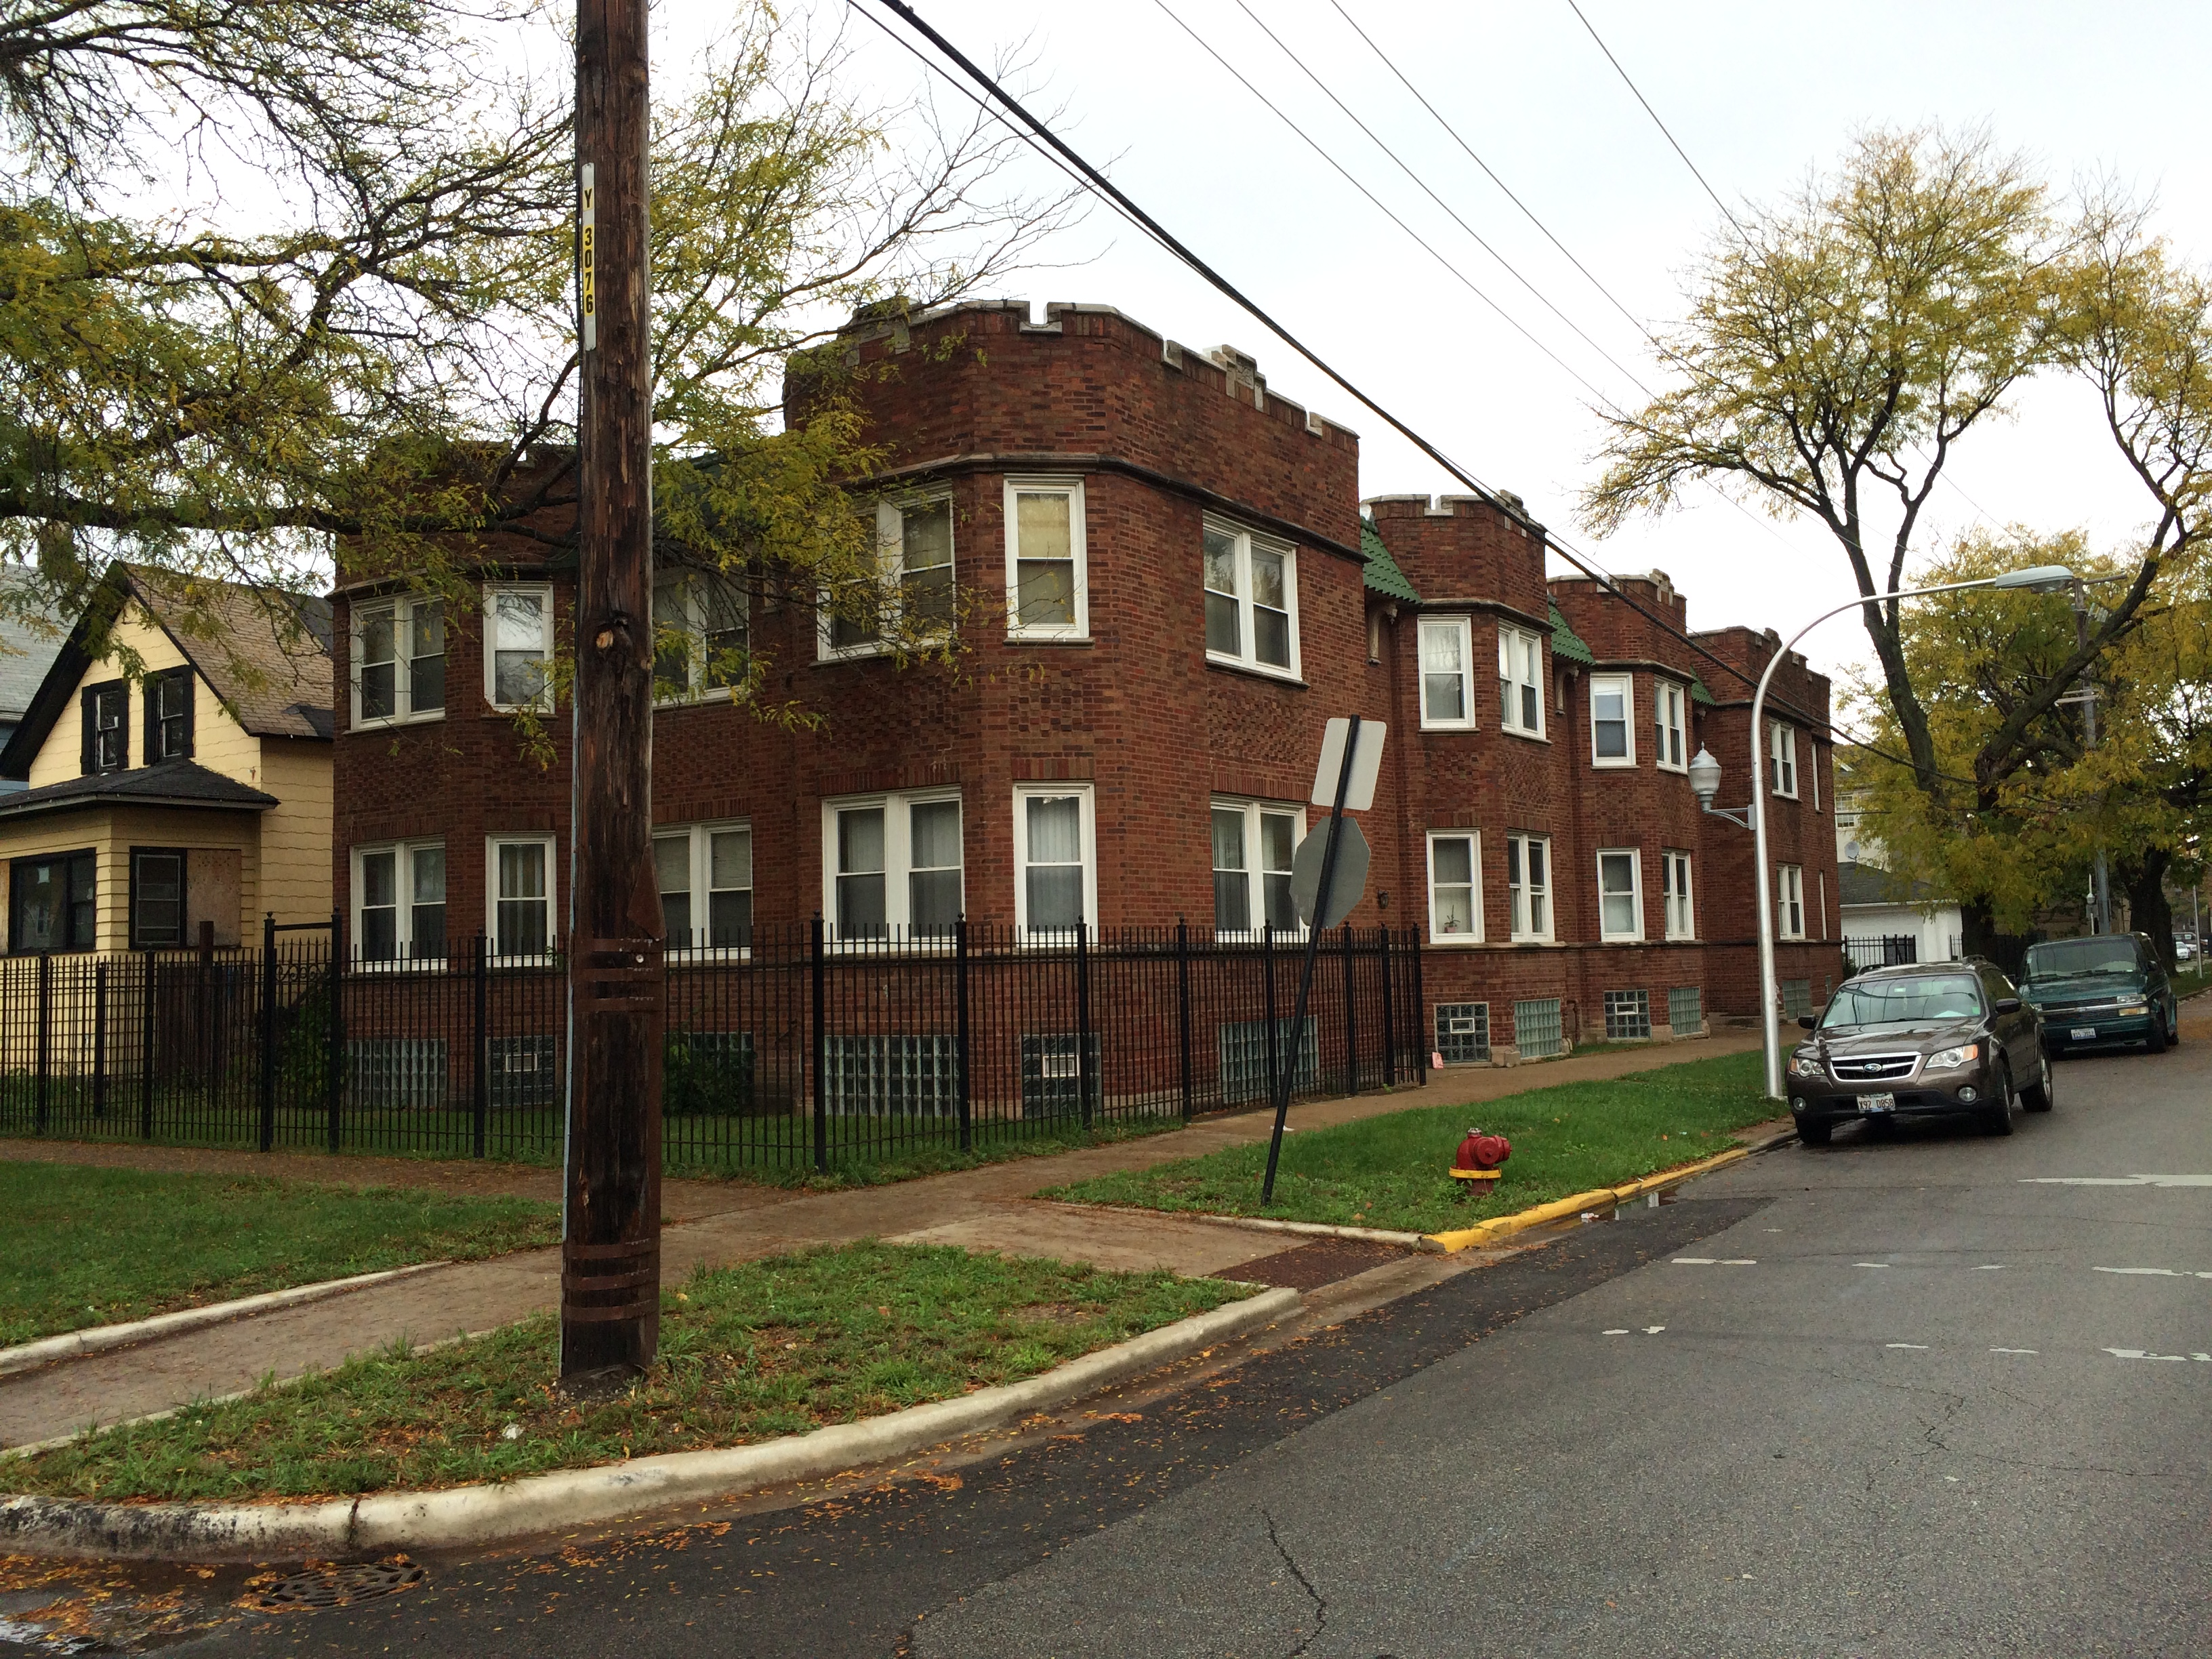 Apartment Building Auctions auction may 18: 8 unit apartment building on chicago's west side